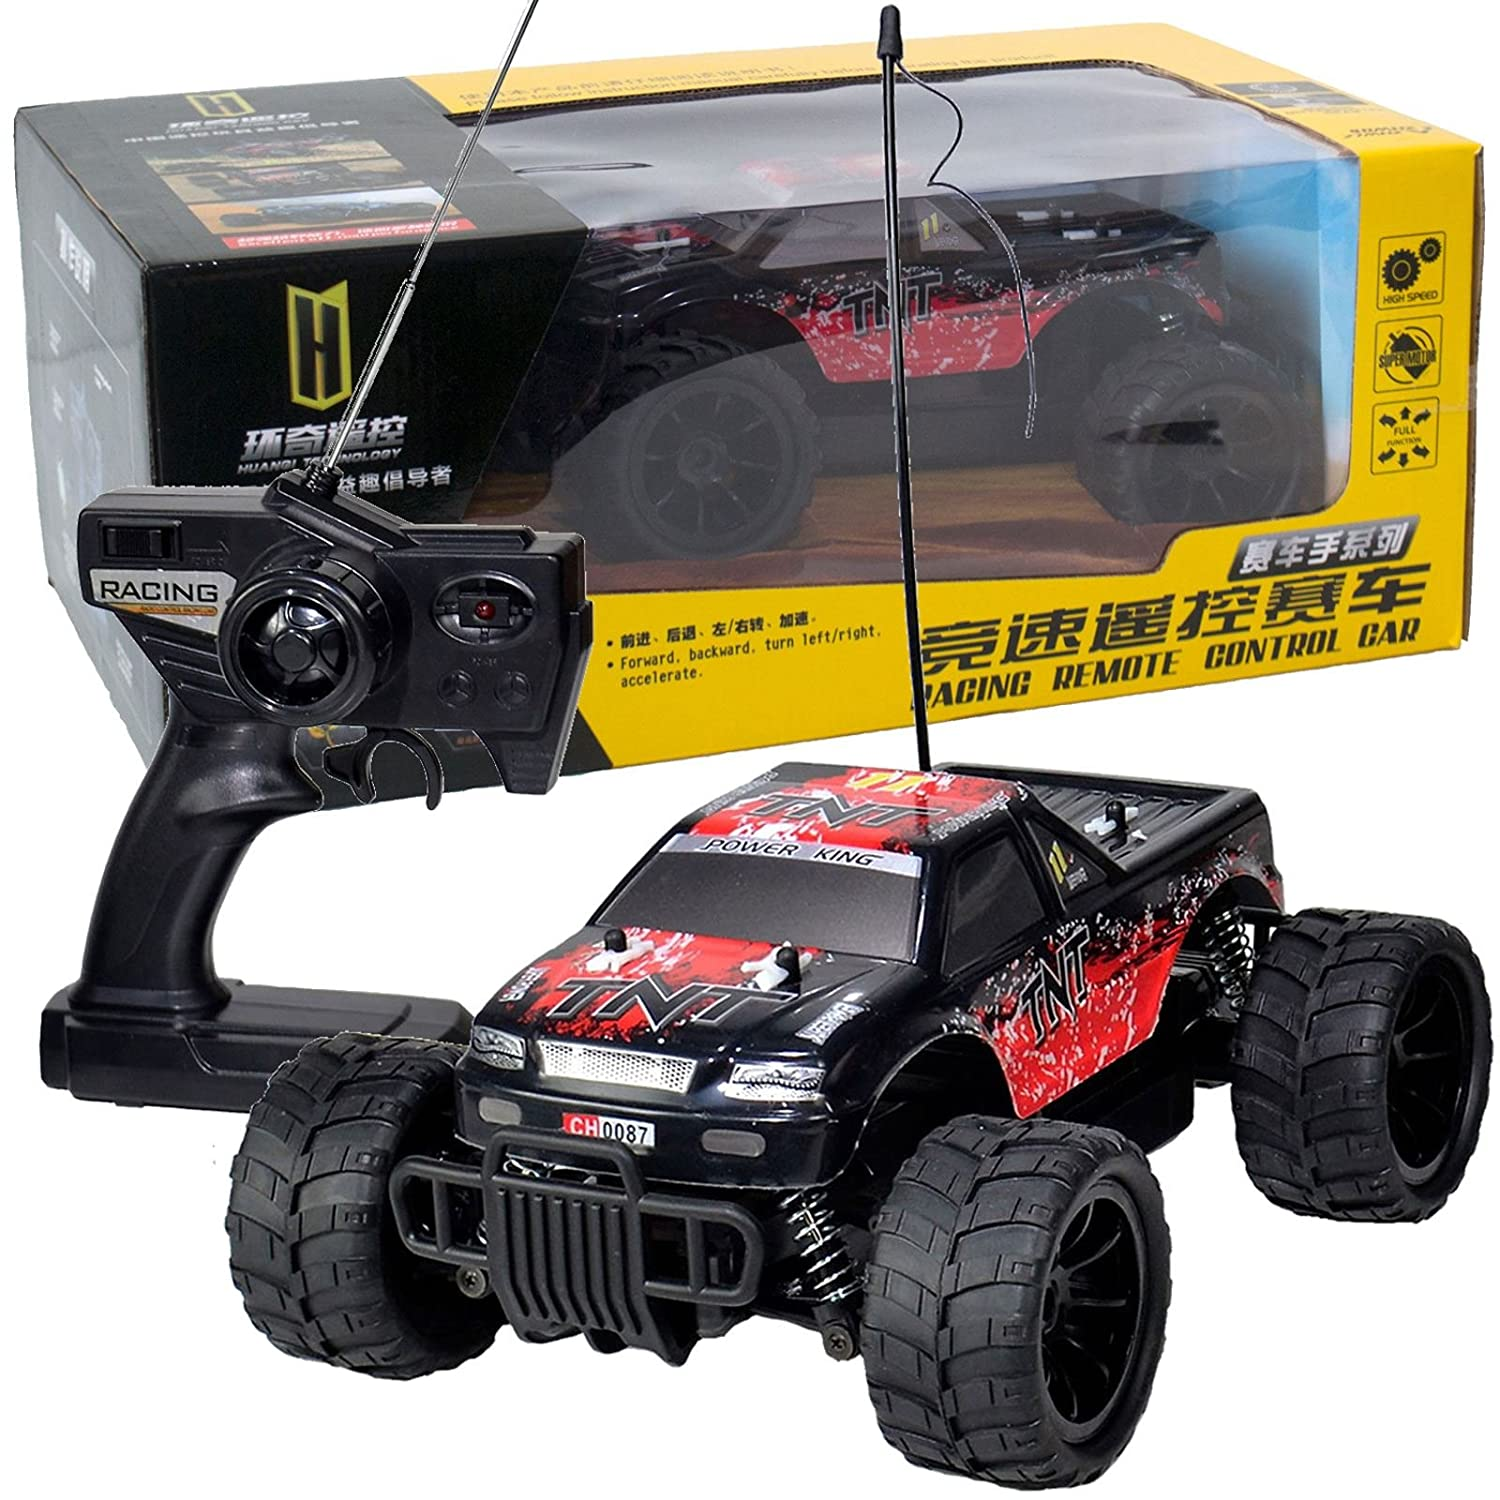 1:16 Radio Remote Control Off Road Buggy Monster Truck Car Black TNT Power King 16MPH Bopster